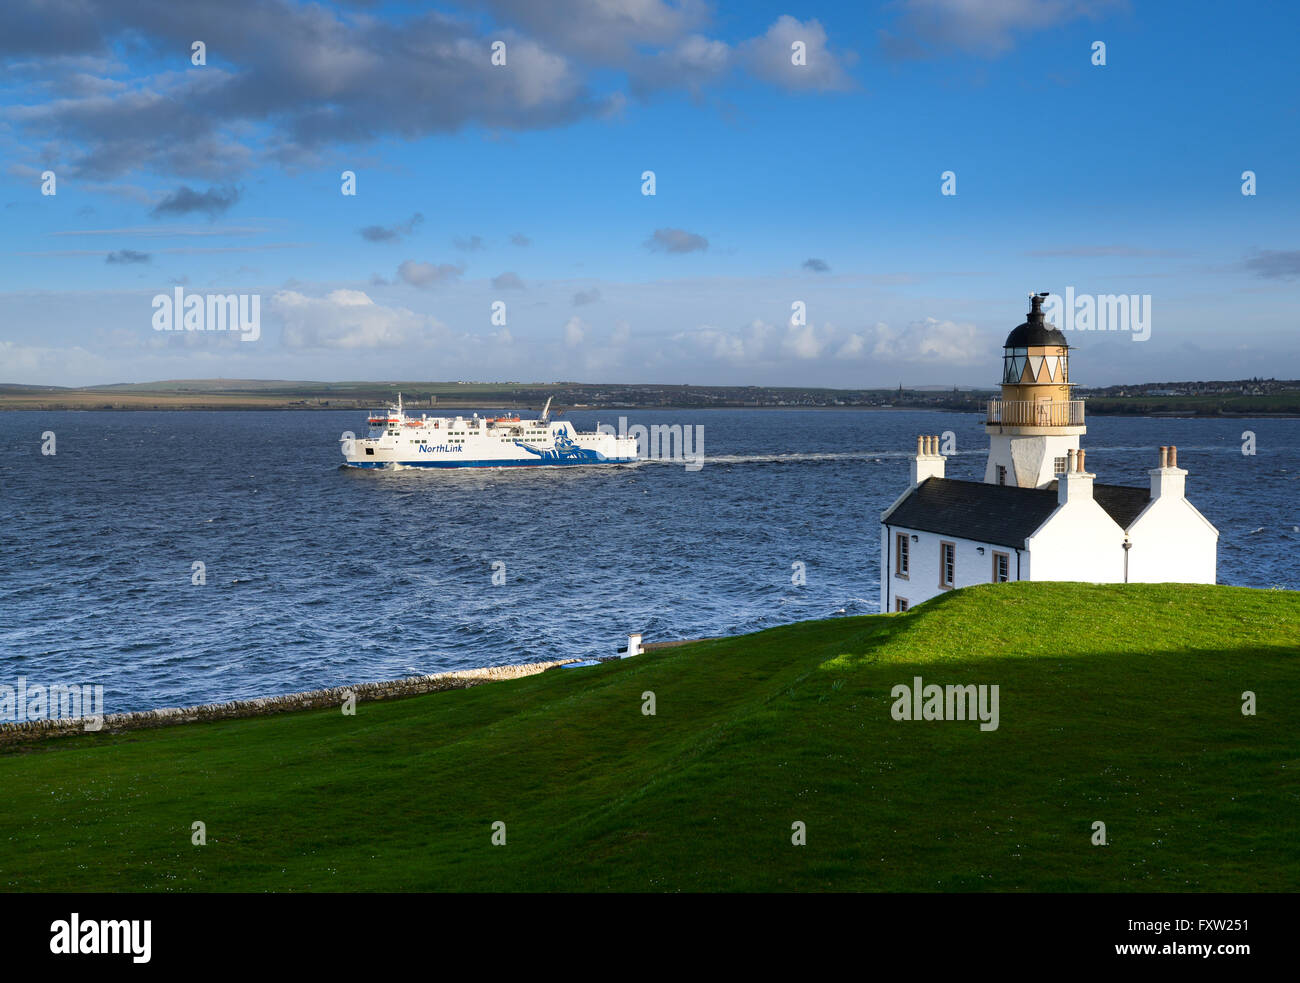 MV Hamnavoe sailing from Scrabster past Holborn Head Lighthouse and Thurso on her way to Stromness, Orkney Isles. - Stock Image